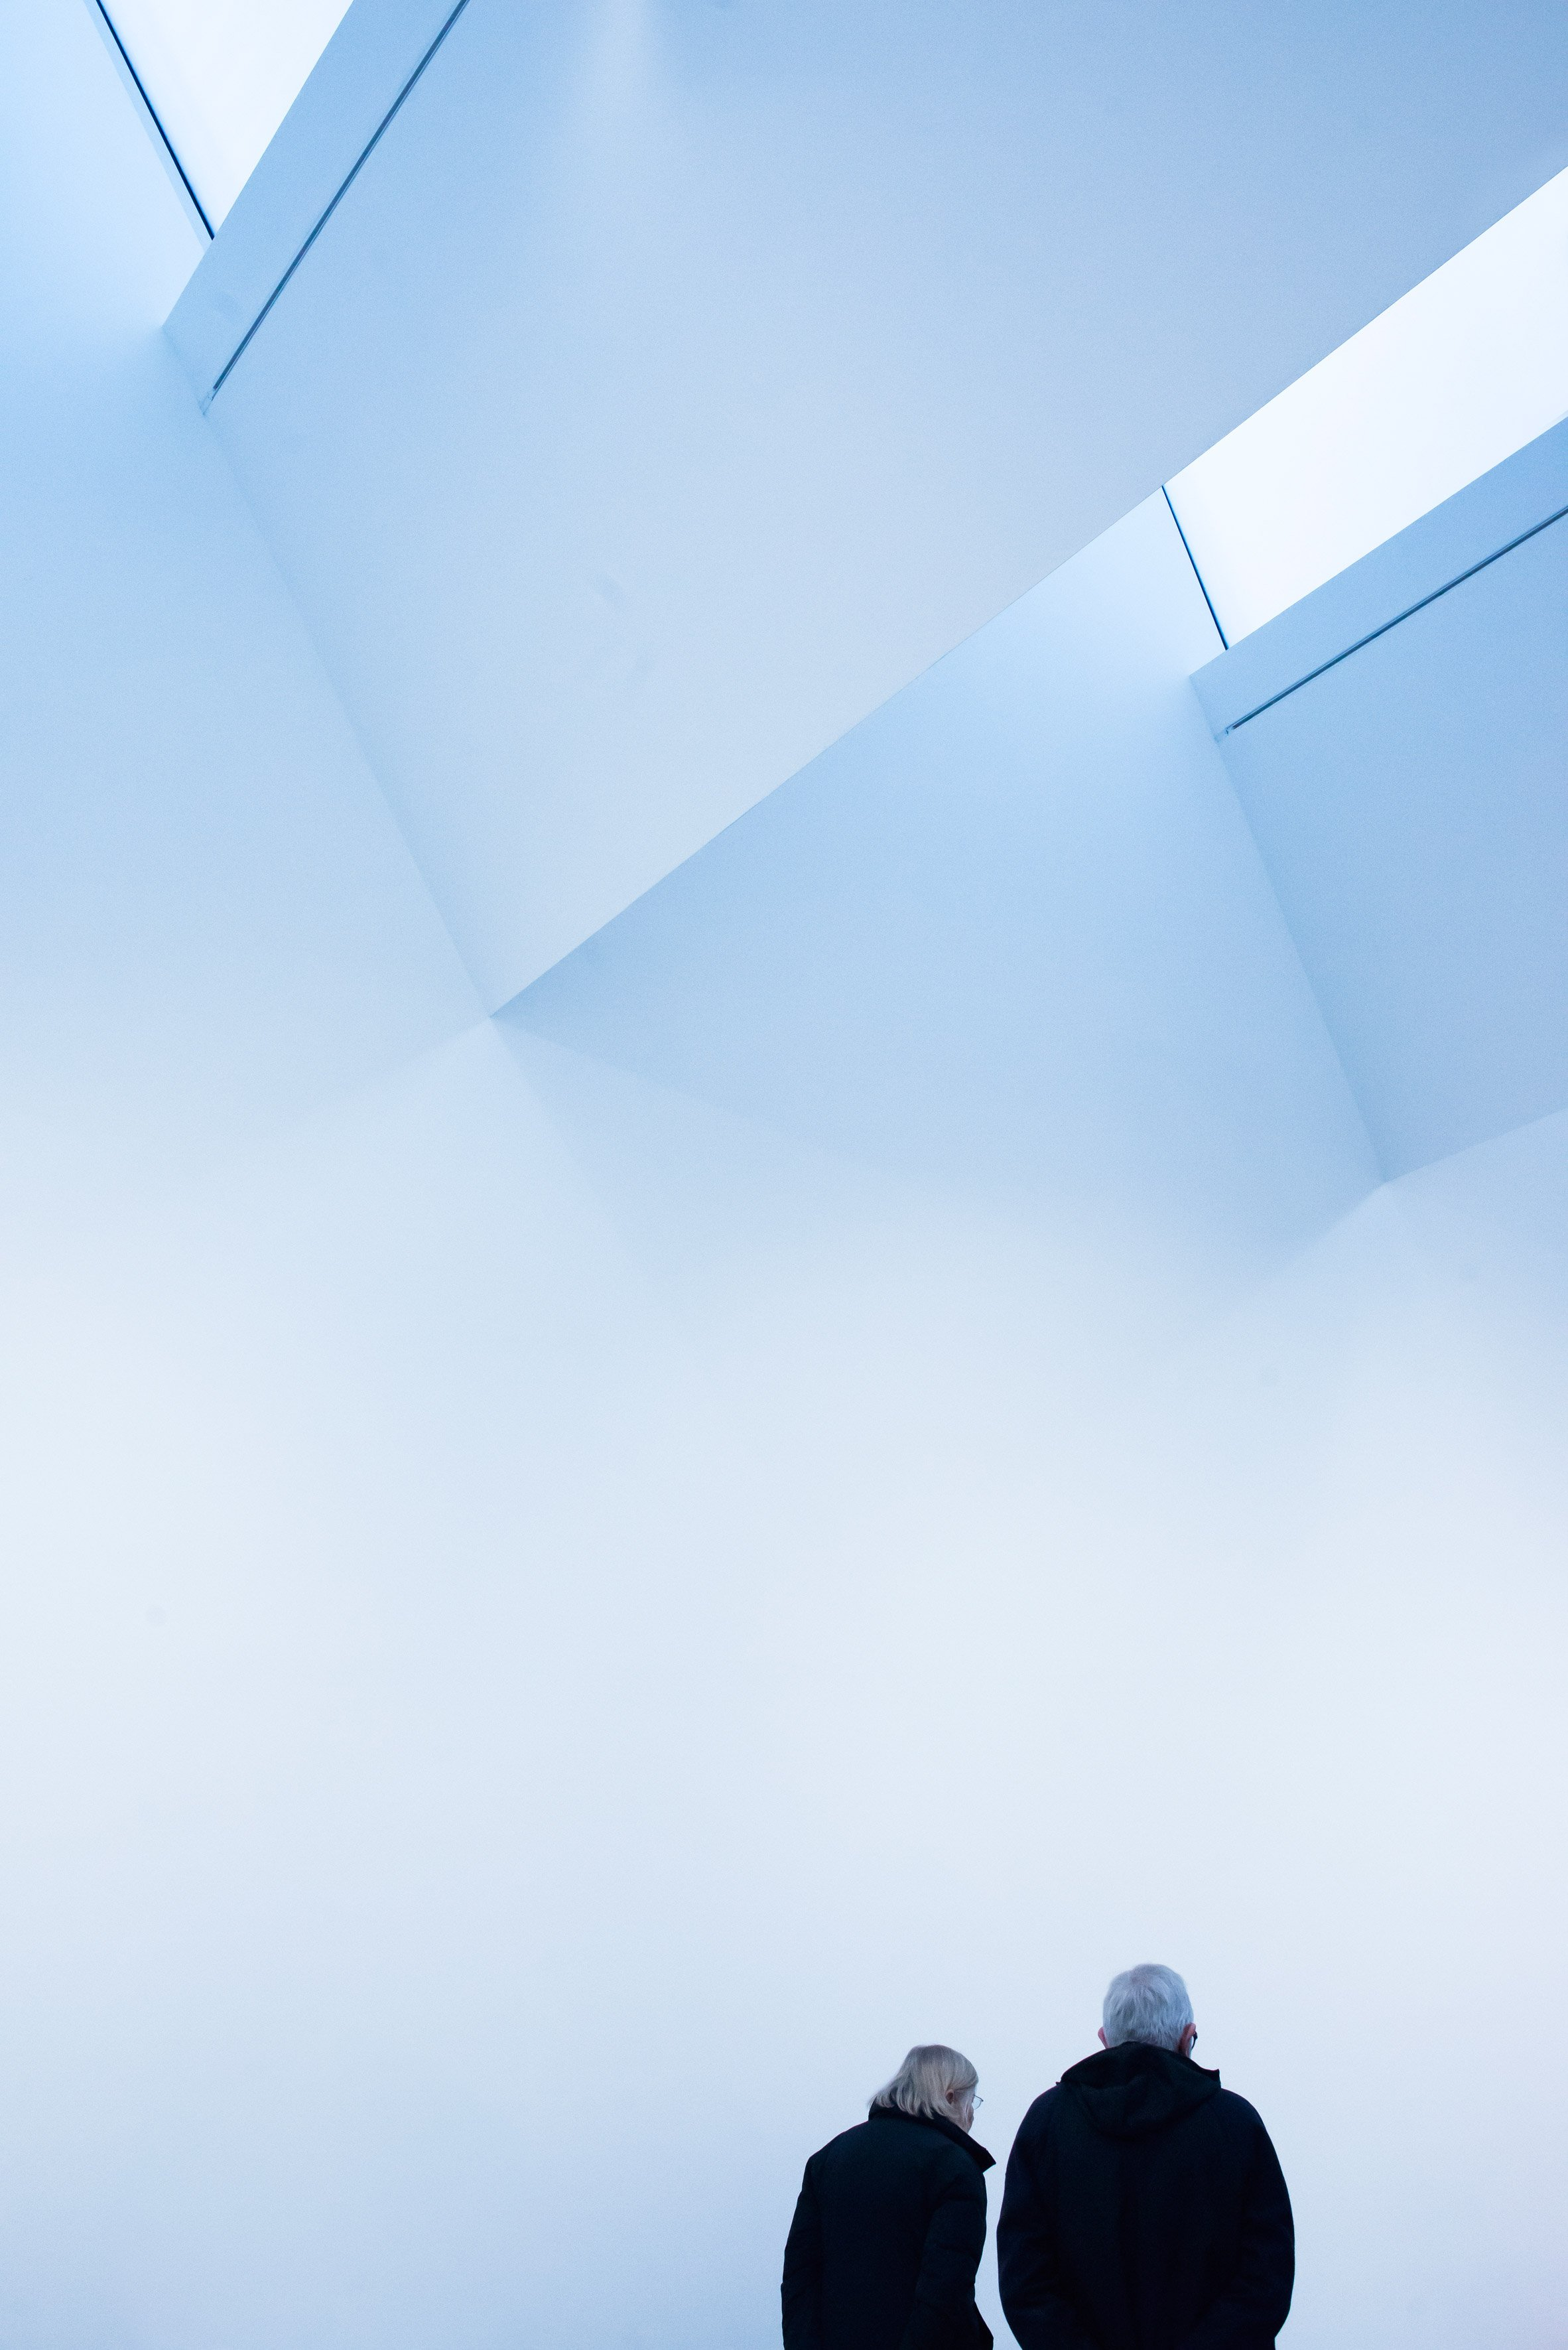 Caruso St John's Newport Street Gallery is bathed in blue light in Simone Bossi's photography